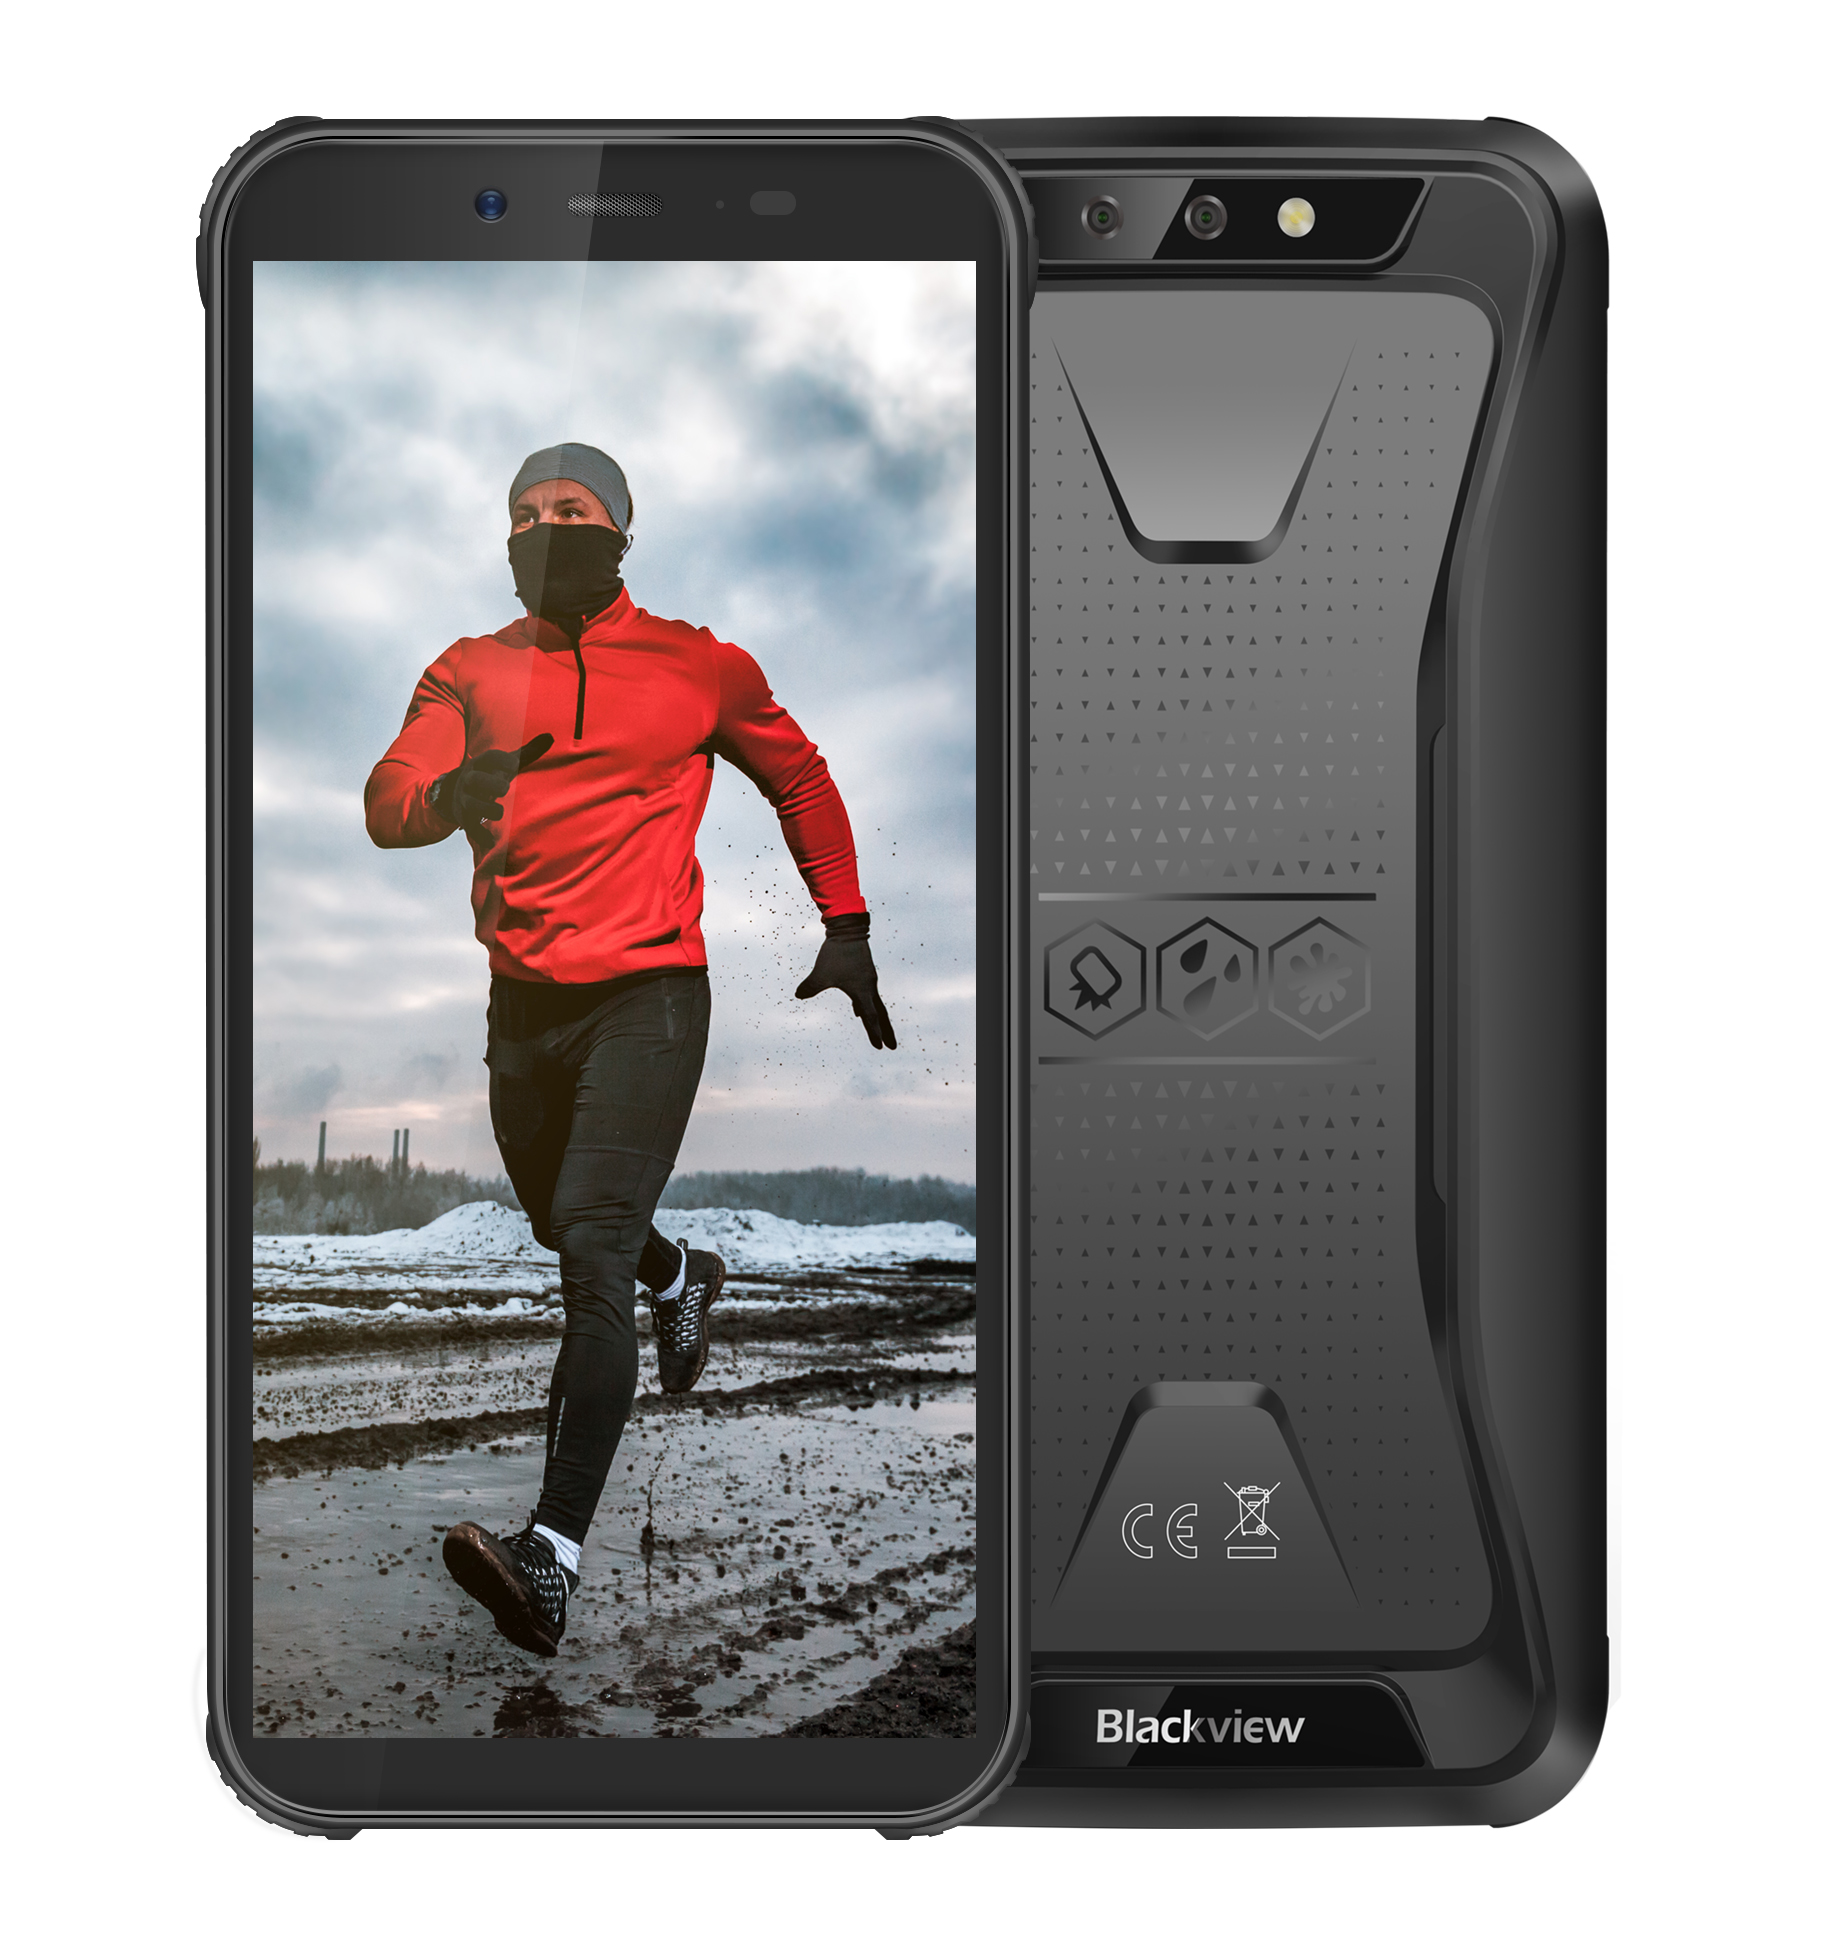 iGET BLACKVIEW GBV5500 Pro Black